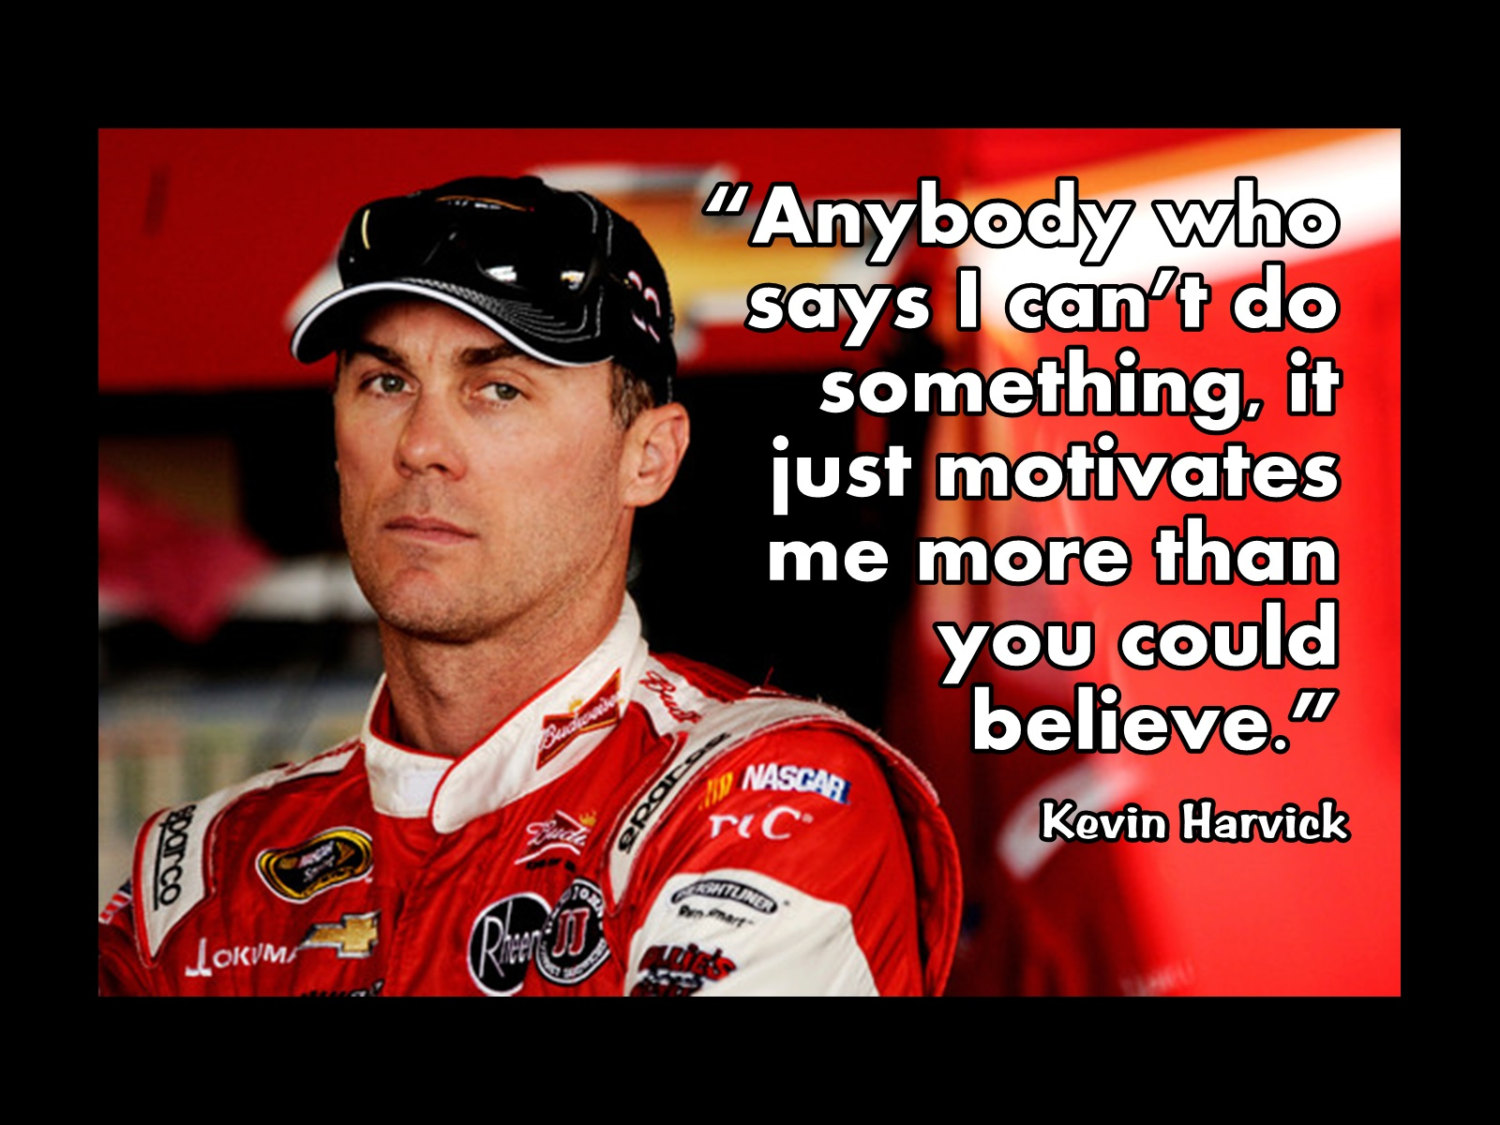 17 best Good morning images on Pinterest | Good morning ...  |Good Nascar Quotes